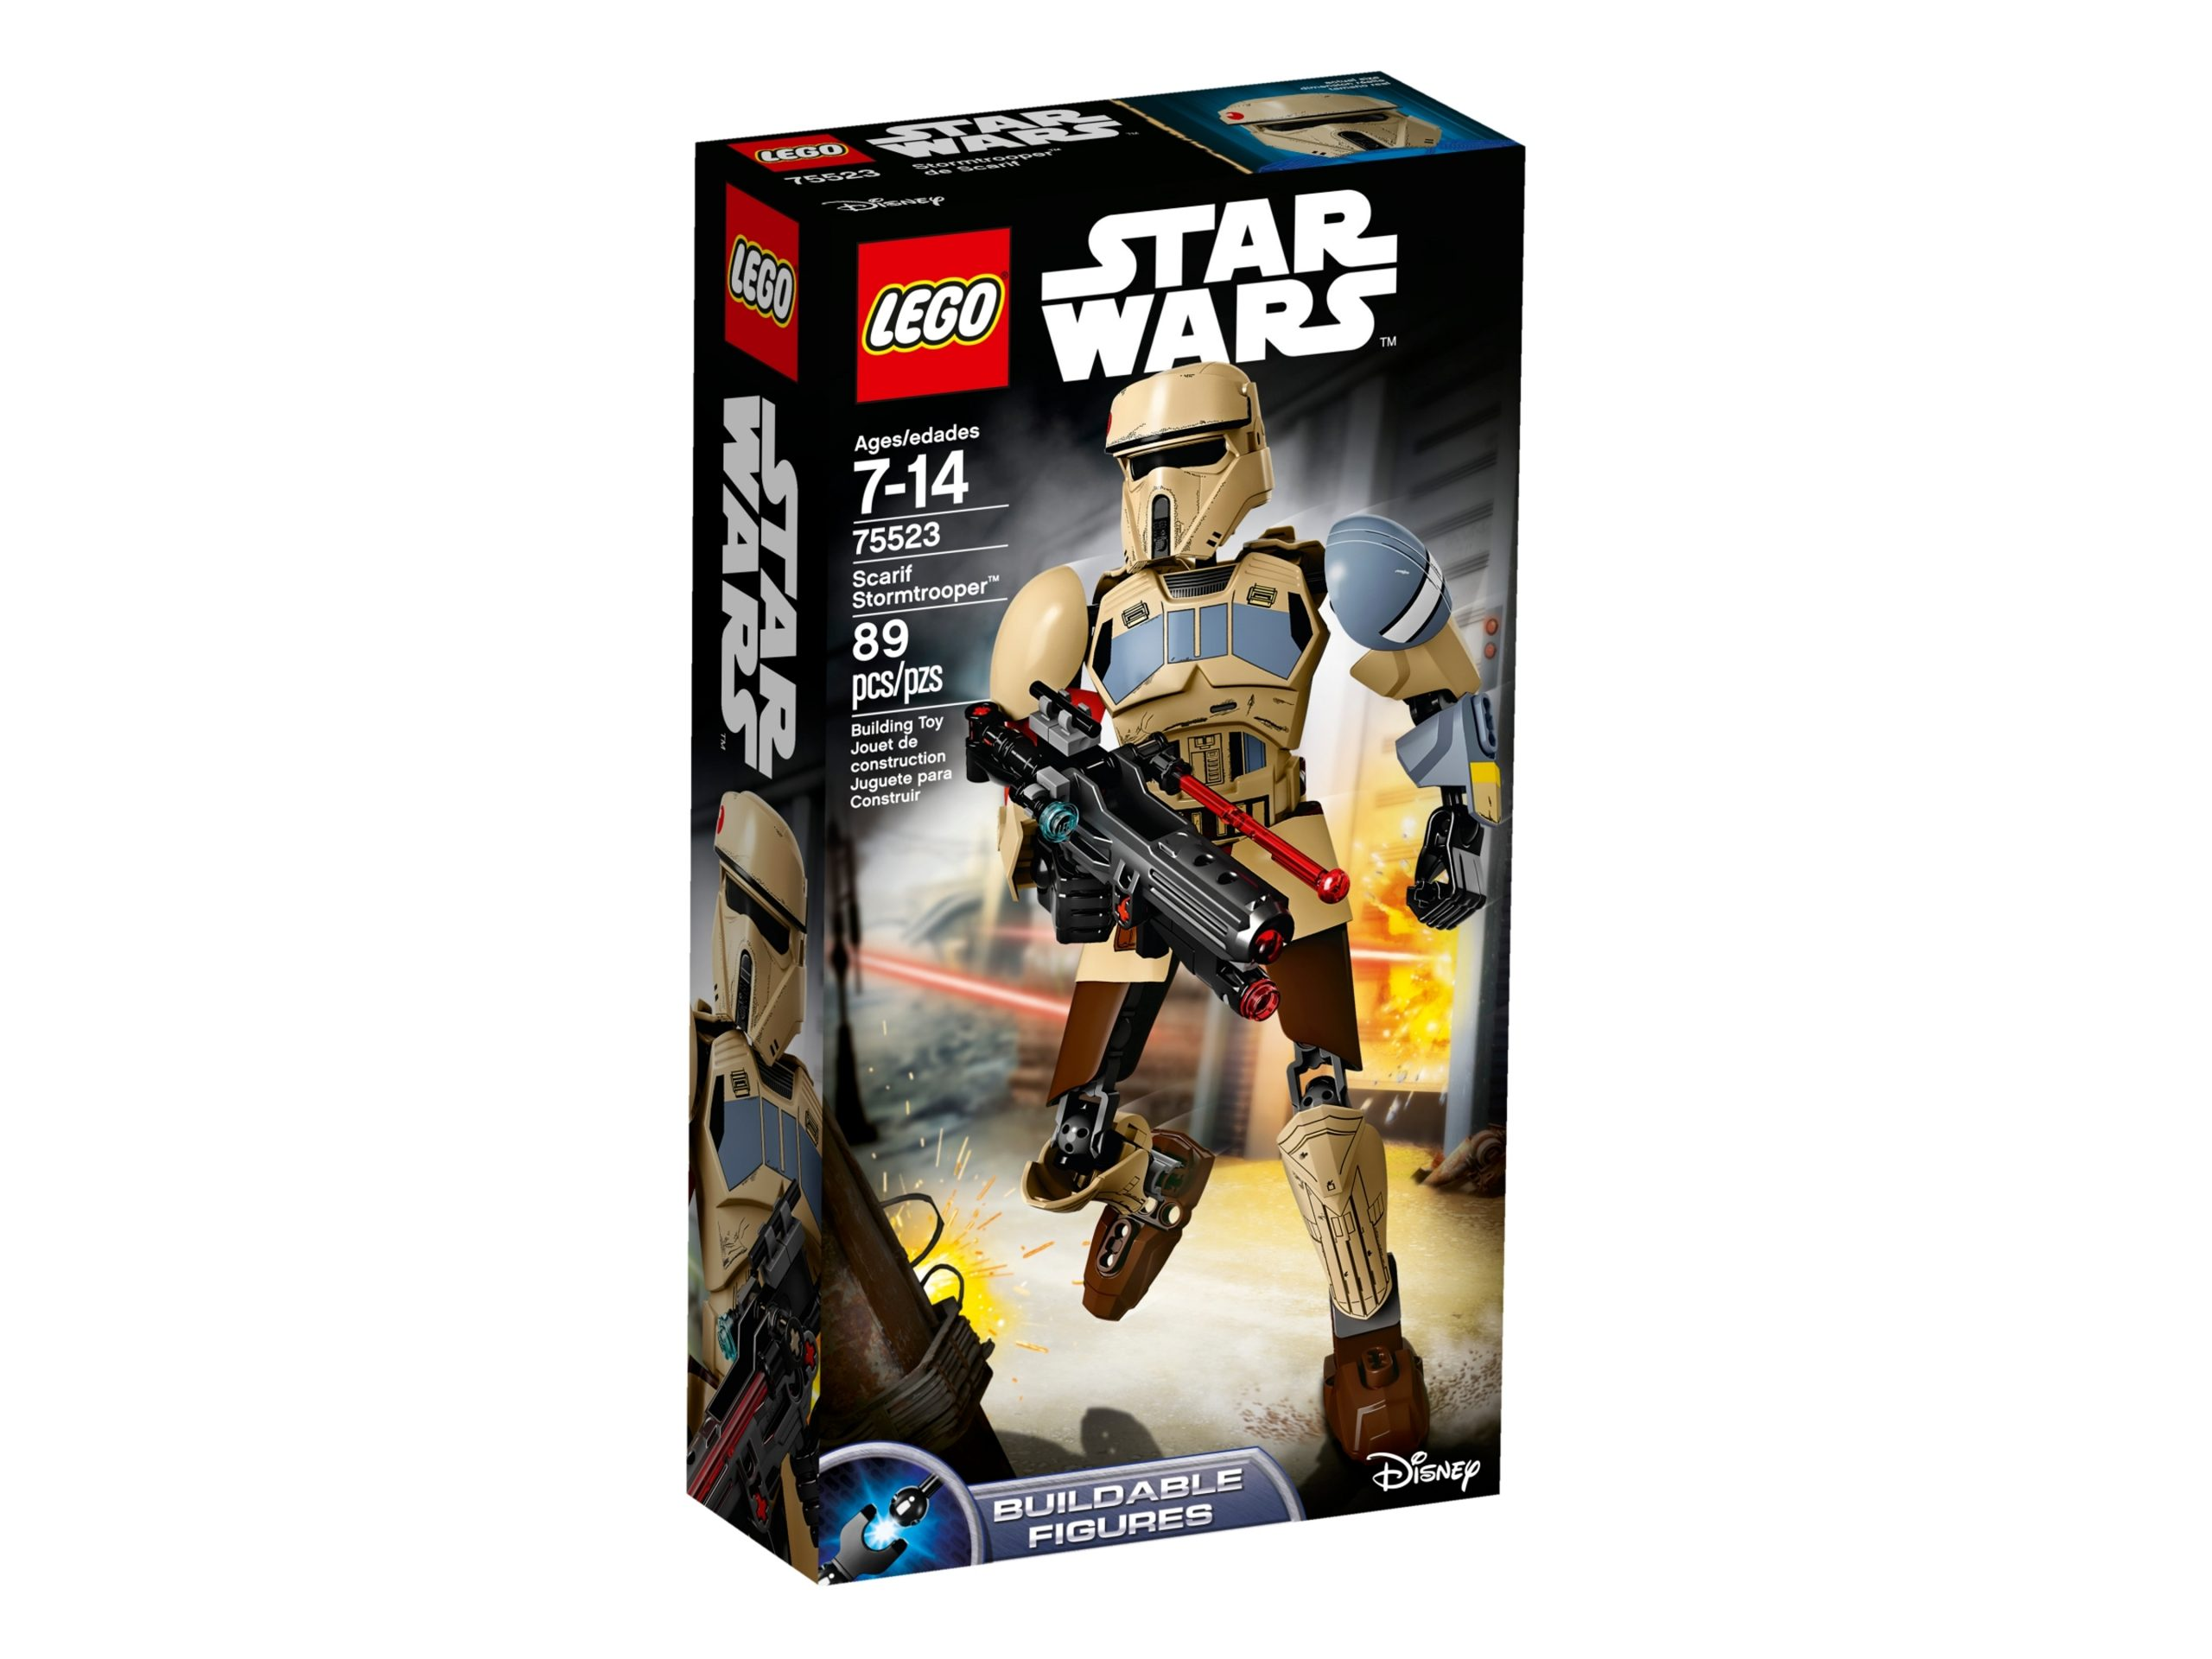 lego 75523 scarif stormtrooper scaled